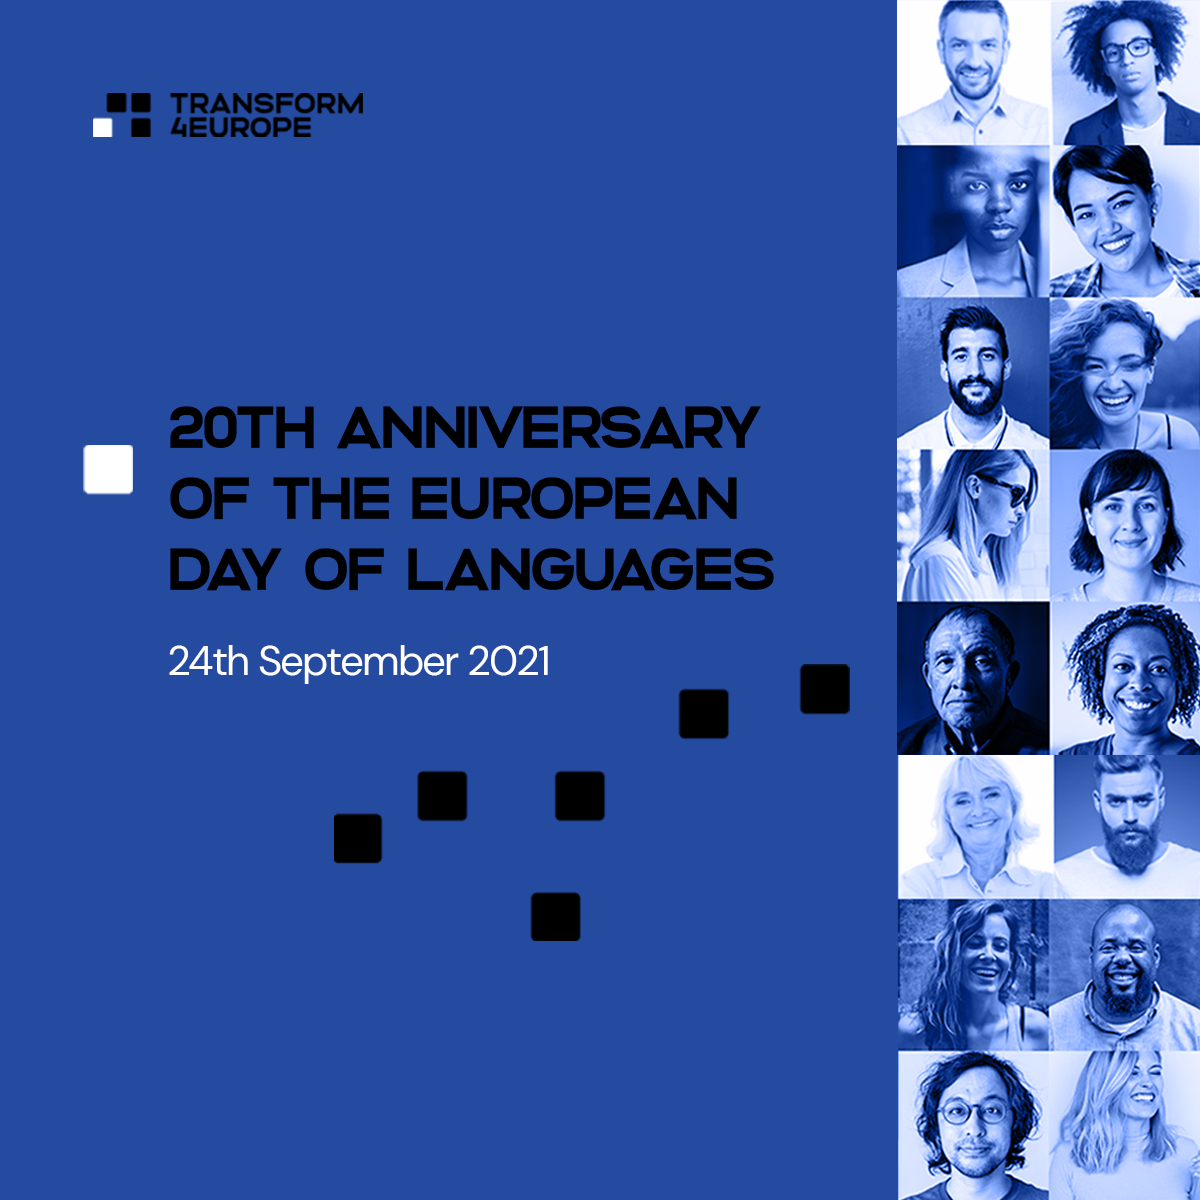 graphic: 20th Anniversary of the European Day of Languages, 24th September 2021